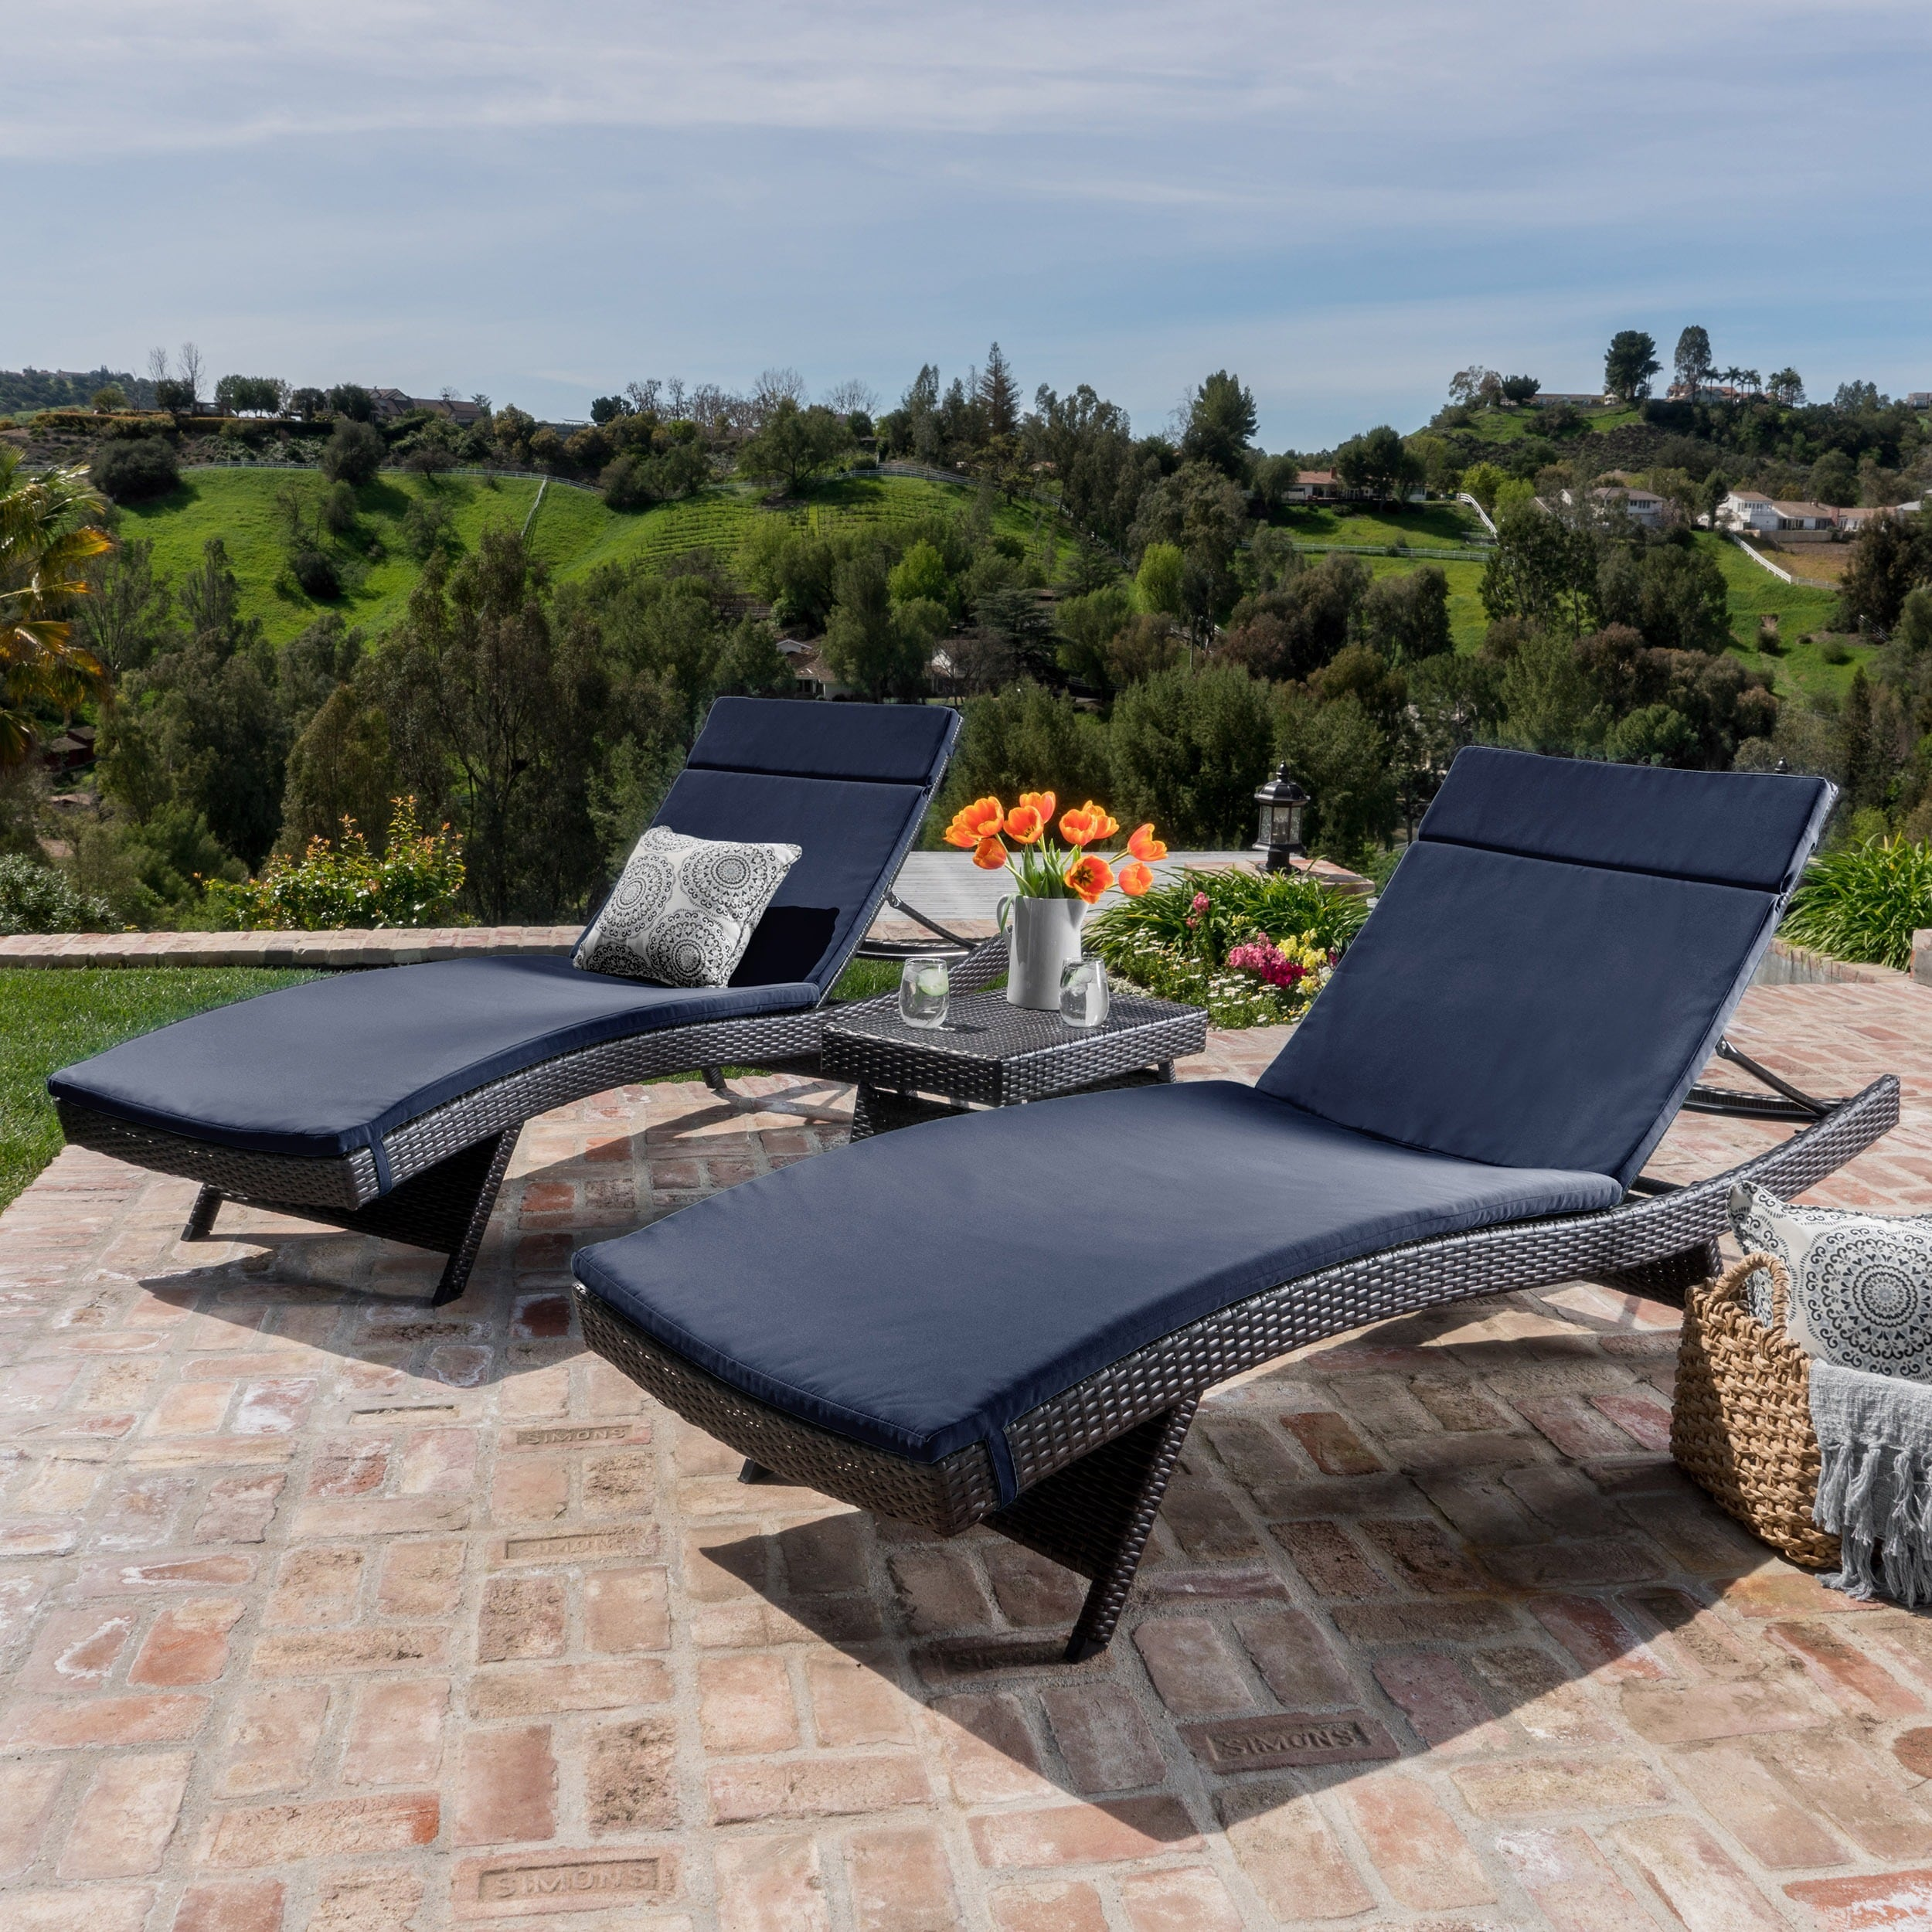 Shop Luana Outdoor 3 Piece Wicker Adjustable Chaise Lounge - Lounger Cushion Cheap